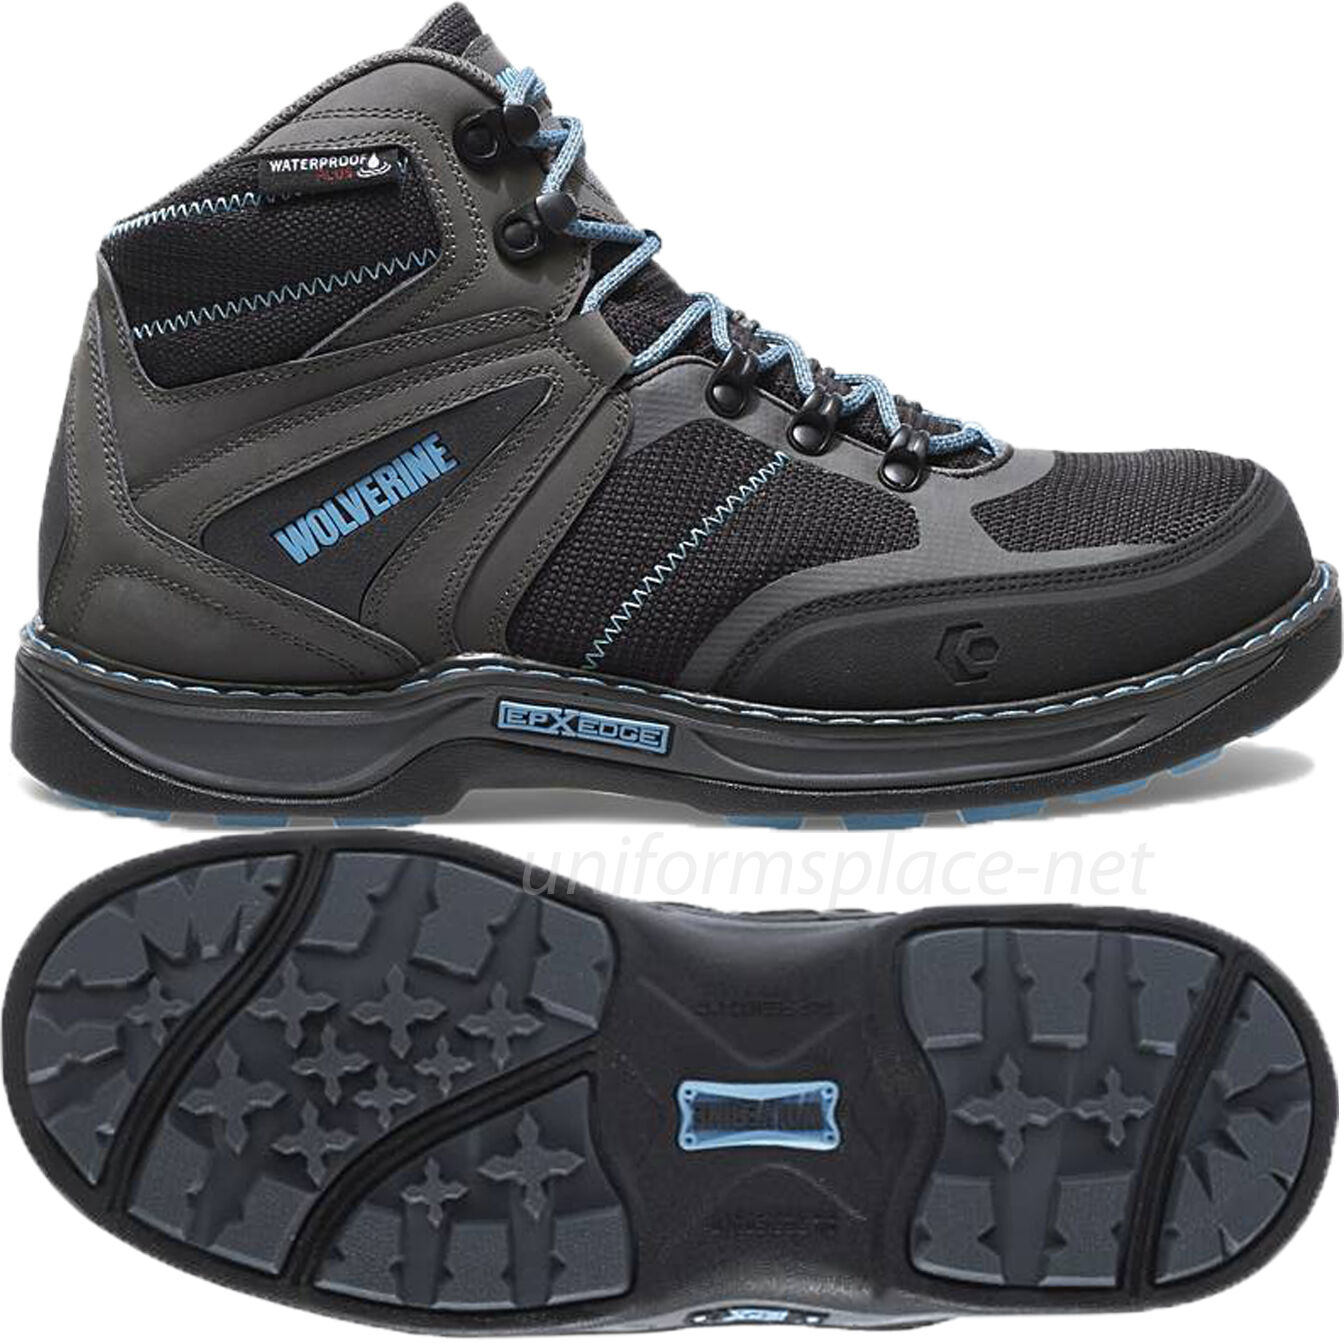 Wolverine Work Boots Womens Edge FX Waterproof Carbonmax Safety Toe W10550 Black